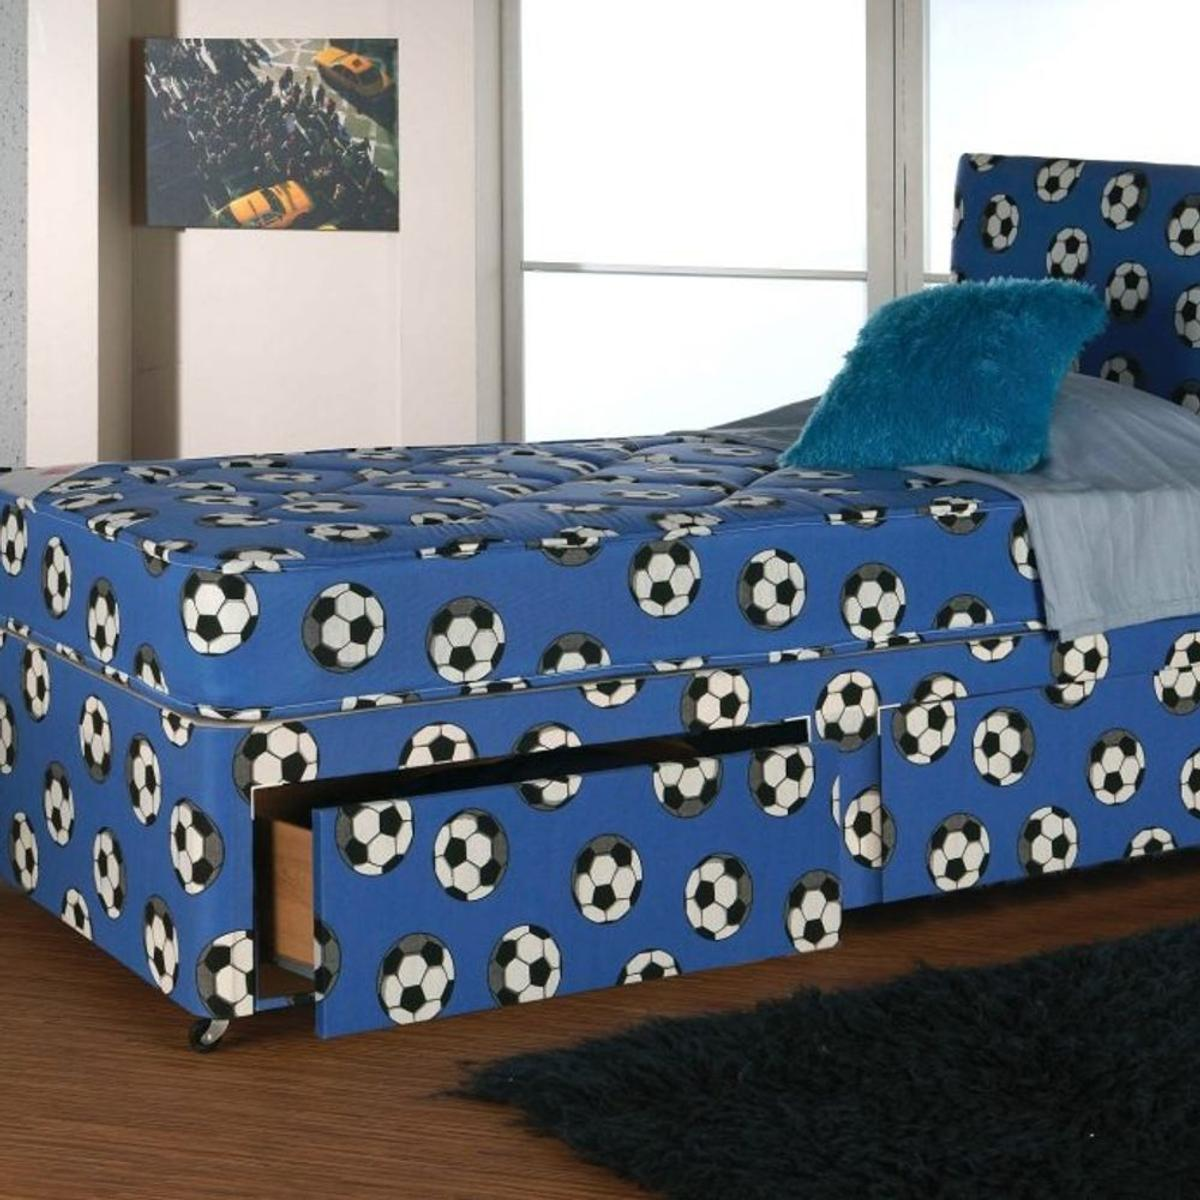 """BRAND NEW FOOTBALL DESIGN DIVAN OPTIONAL BASES, HEADBOARDS AND MATTRESSES AVAILABLE IN BLACK AND WHITE COLOUR AT VERY LOW PRICE 🍀Single Divan Base £40 🍀Base and budget mattress £60 🍀Base and 9""""deep quilted mattress £90 🍀Base and 10""""quilted orthopaedic £120 🍀Base and 10""""fully orthopaedic memory foam £140 🍀Base and 10""""memory foam £170 🍀EVERYTHING IS BRAND NEW IN FLAT PACKAGING AND WILL BE DELIVERED TO YOU THROUGH OUR QUICK DELIVERY SERVICE 💬WHATSAPP = 07566808408 ☎️CALL = 01617913101"""